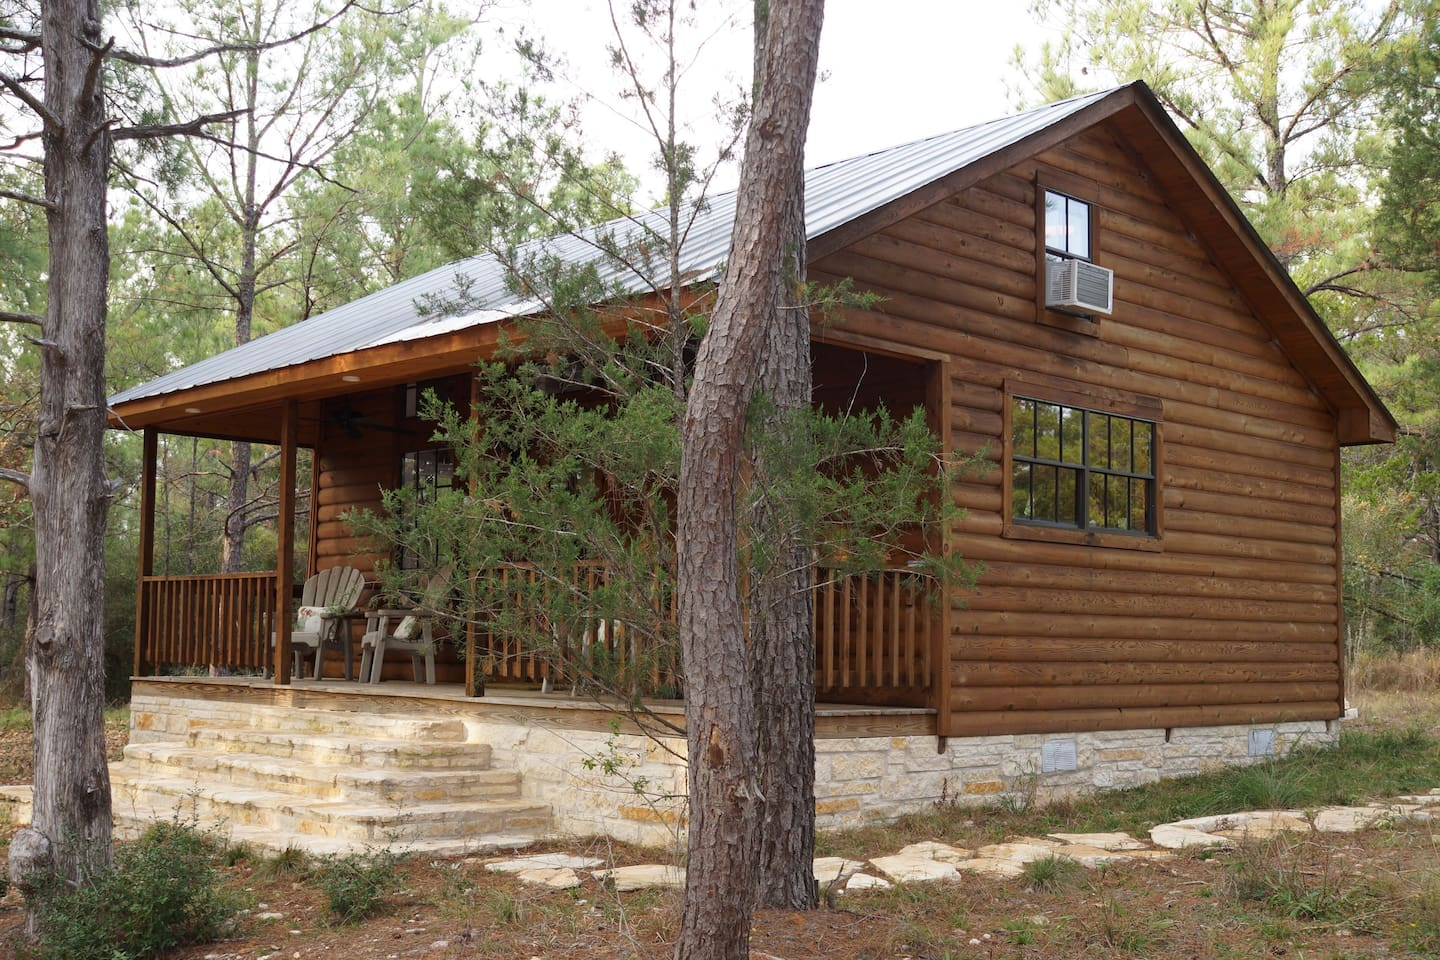 dells rental cabins concan wisconsin in texas to homes ellijay ohio rent vacation georgia tx own austin